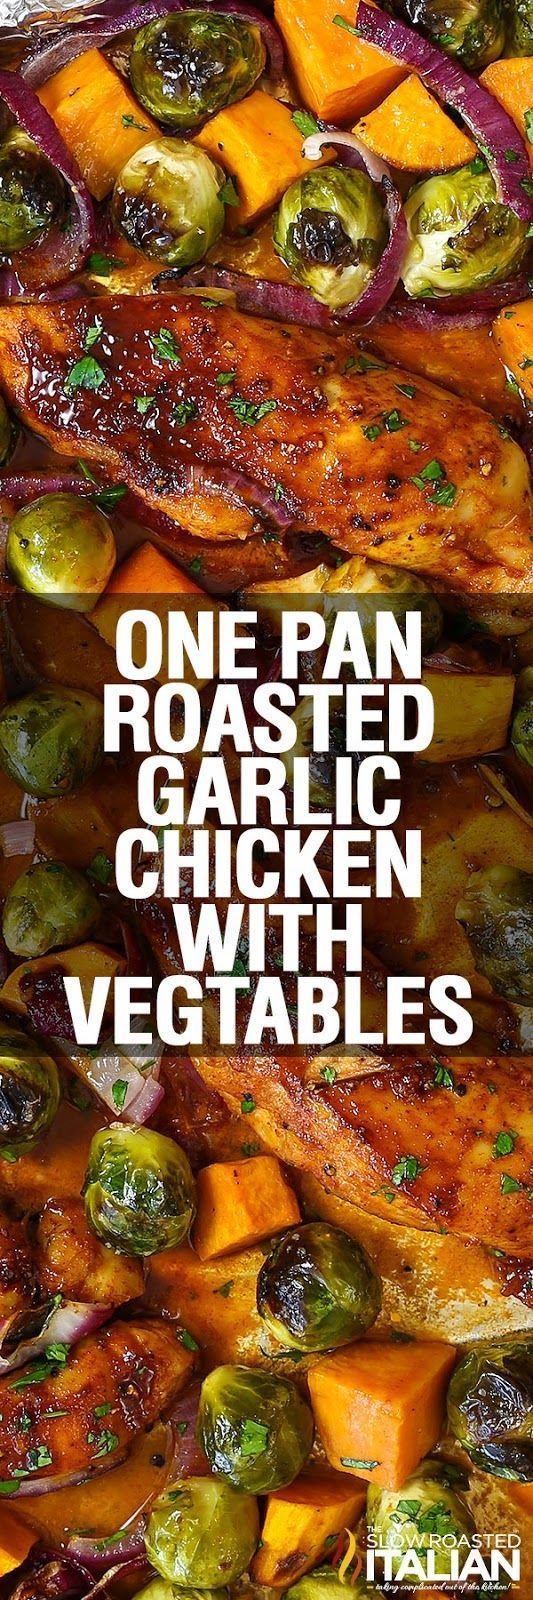 One Pan Roasted Garlic Chicken is a simple recipe for a sheet pan supper that your family will thank you for. Moist and tender chicken is bursting with flavor from the sweet heat honey garlic marinade. Brussels sprouts and sweet potatoes are roasted to caramelized perfection. The ultimate family dinner, this one pan recipe is one that you will be making again and again. #ad #BrightBites